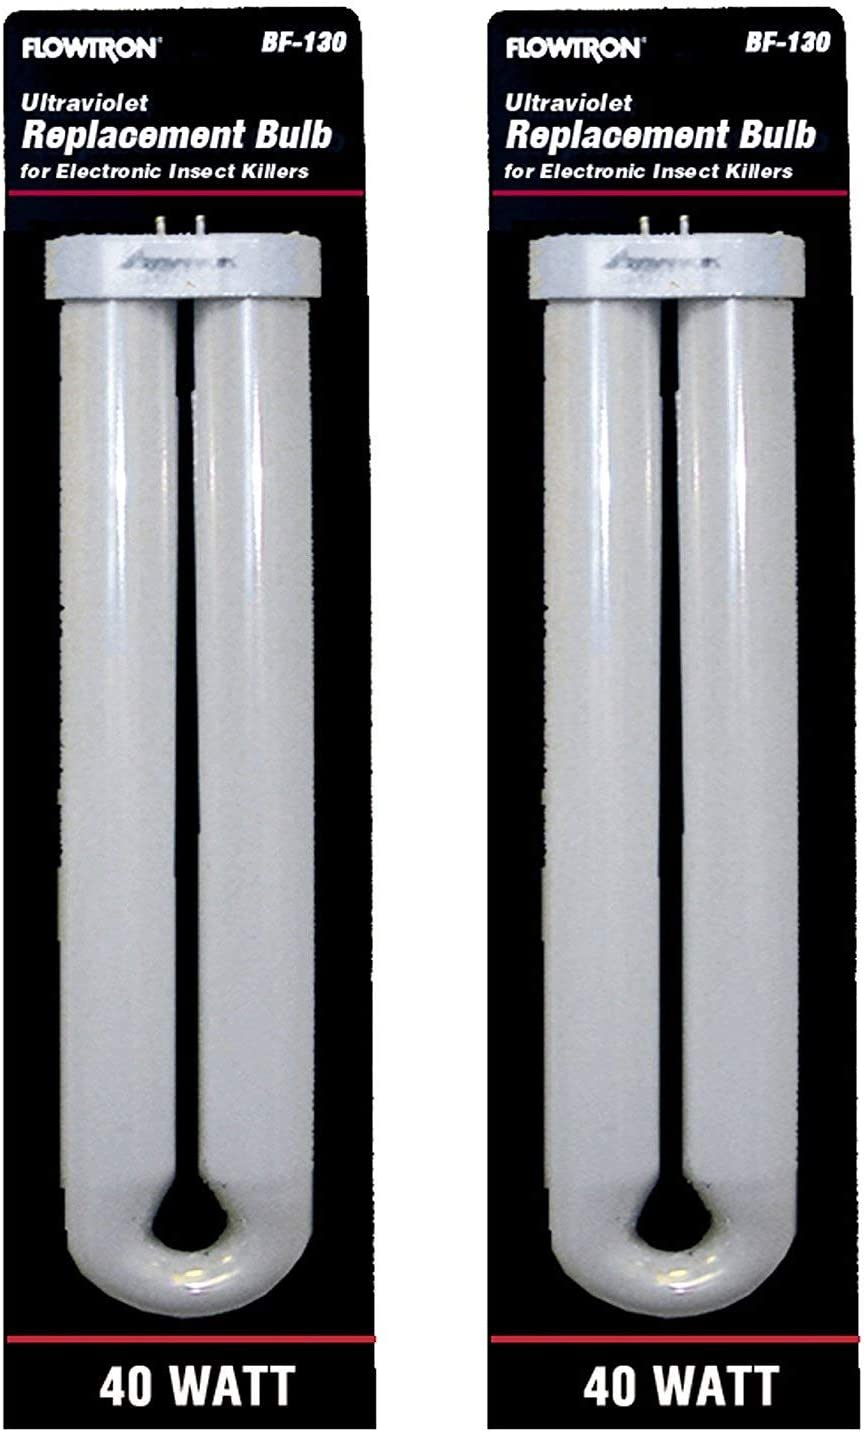 Flowtron BF-130 40 Watt U-Shape Replacement Bulb for FC7800 & FC8800 Models (Pack of 2)